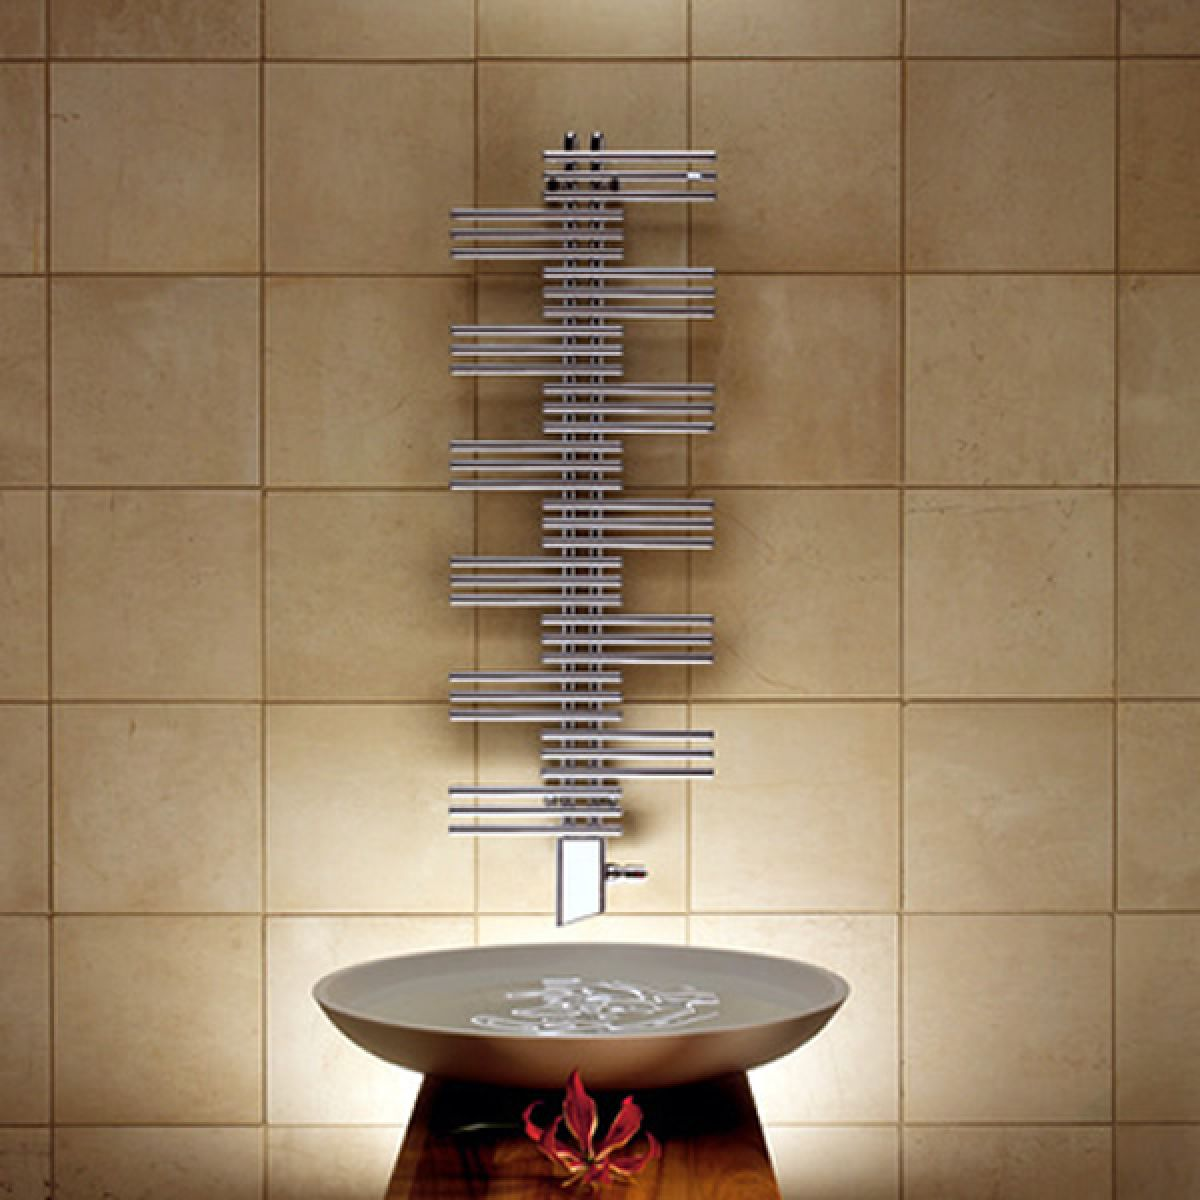 Salle De Bain Sans Aeration Solution ~ Zehnder Yucca Sym Radiator Uk Bathrooms